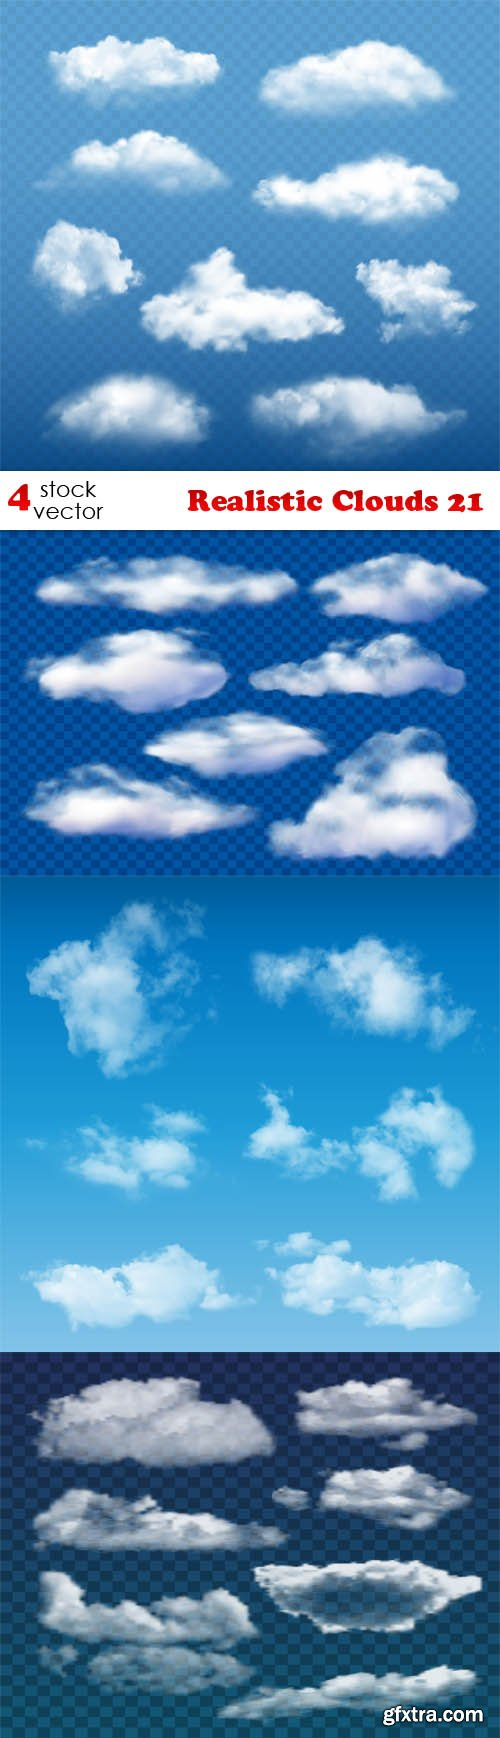 Vectors - Realistic Clouds 21